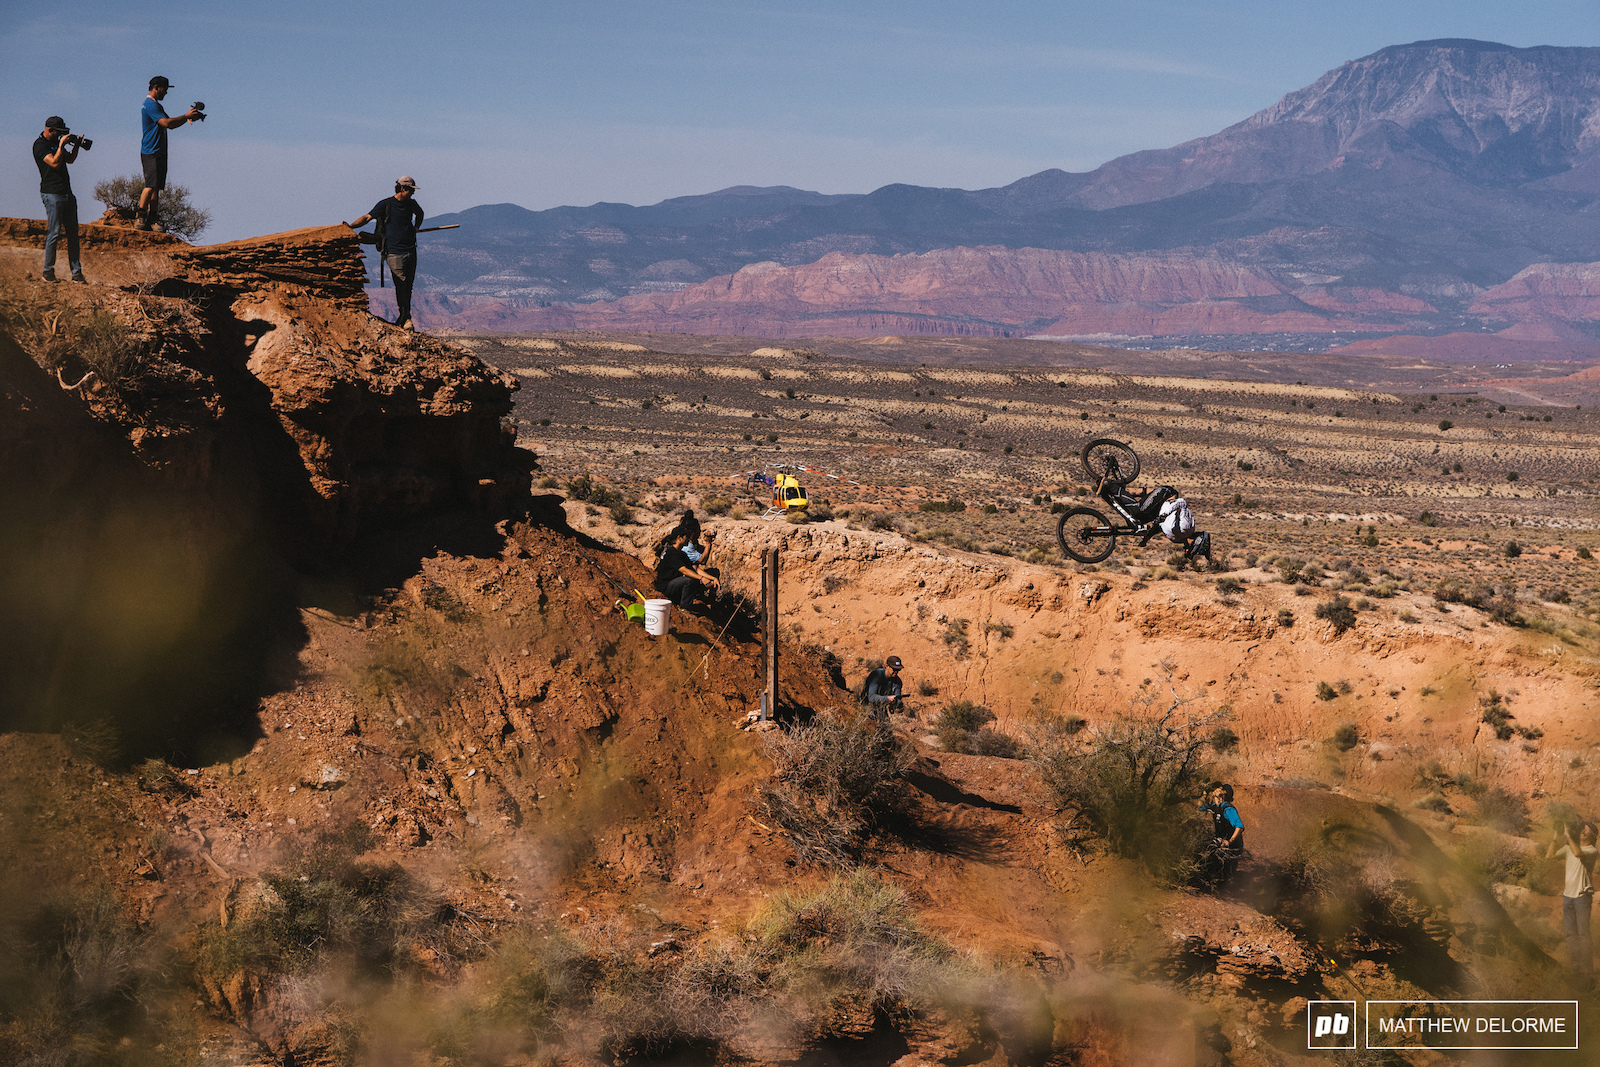 Tom van Steenbergen nails down the final features of his run.